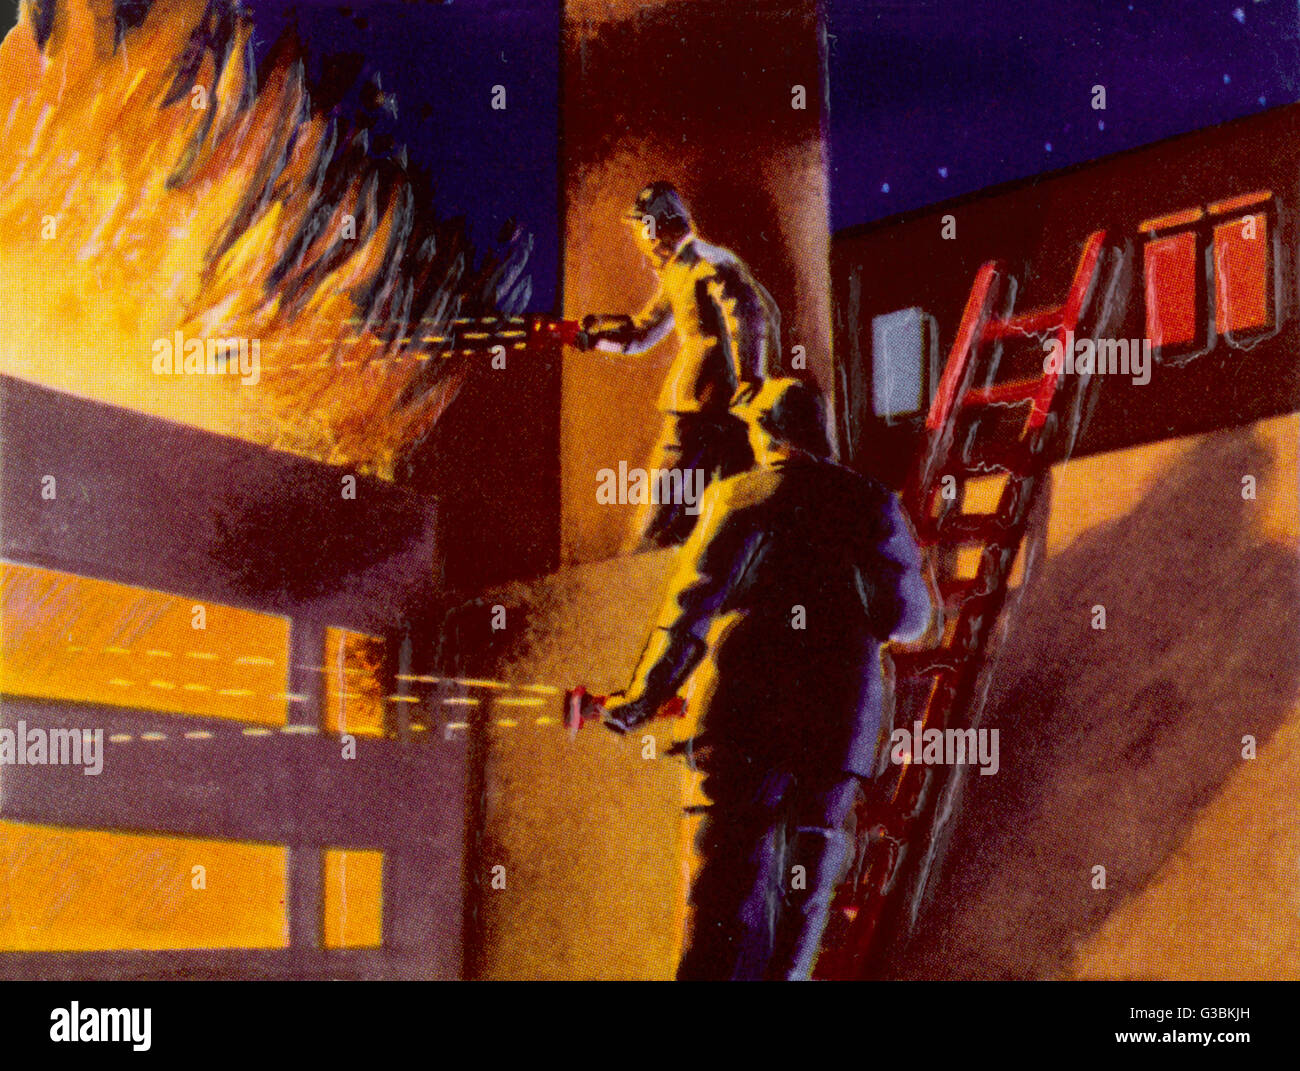 USING ATOMIC POWER TO FIGHT  FIRES        Date: circa 1950 - Stock Image